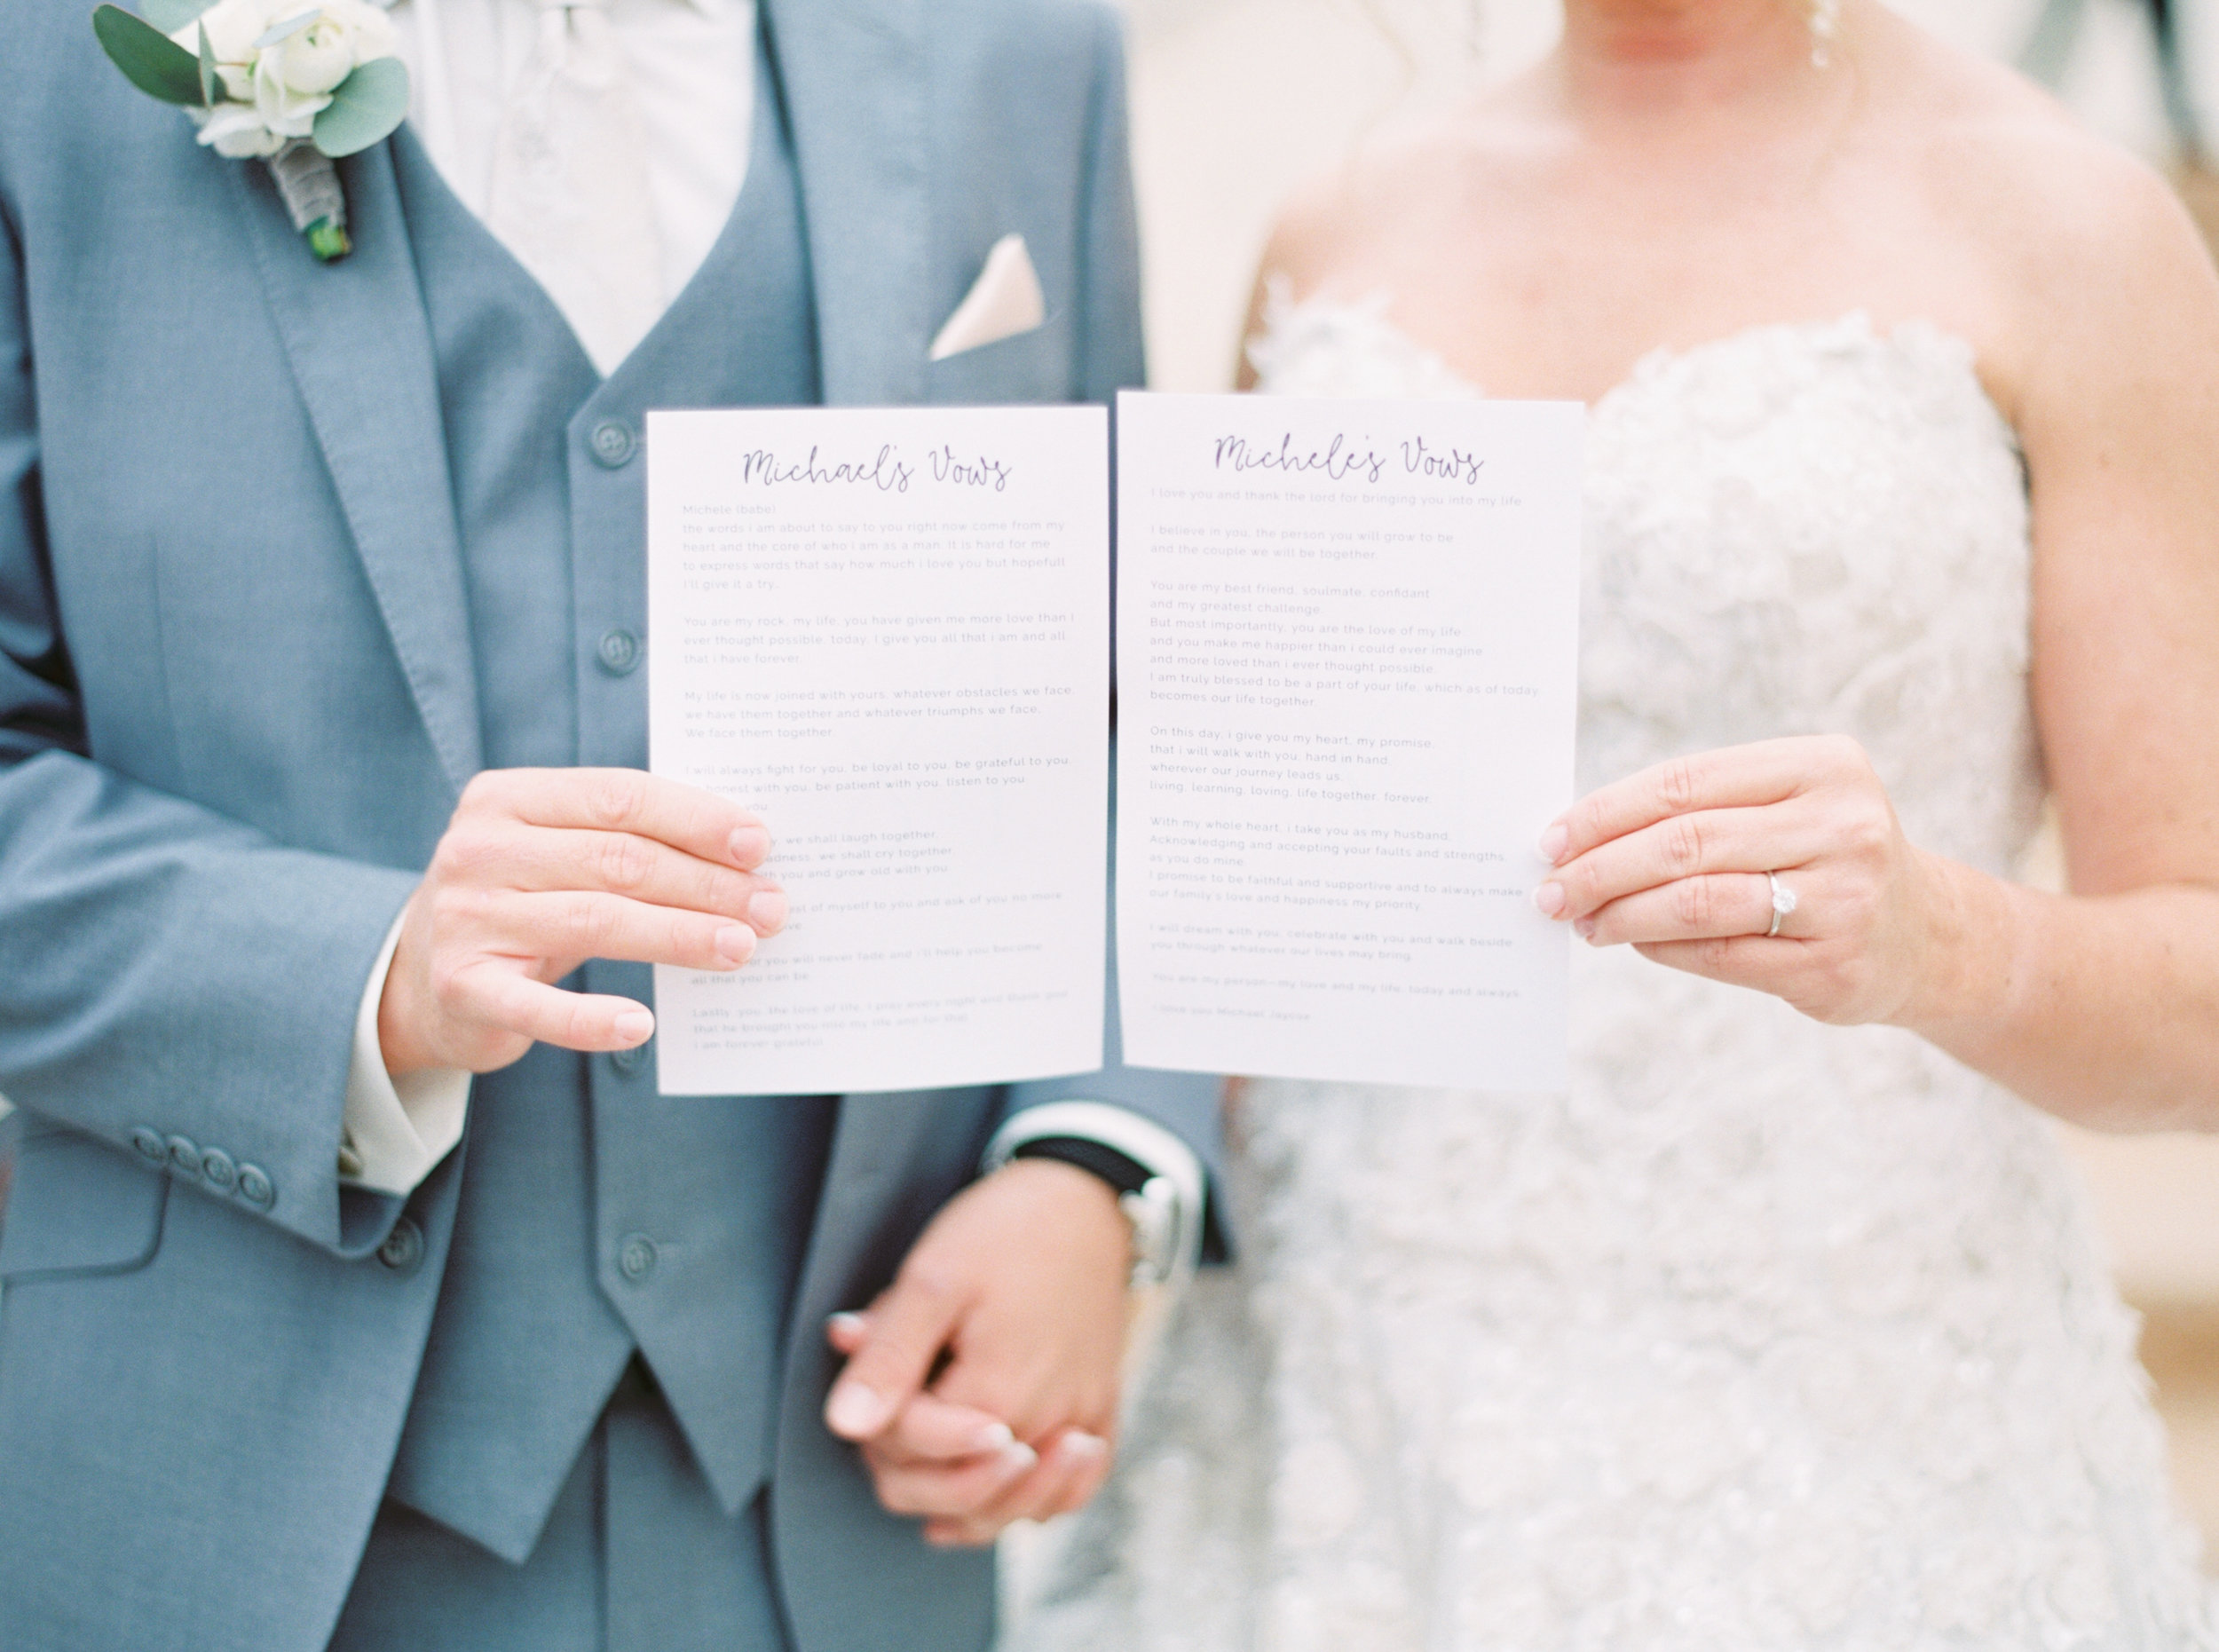 15 wedding vows share vows read vows say vows before ceremony custom paper for vows write your own vows Life Design Events photos by Melissa Jill Photography.jpg